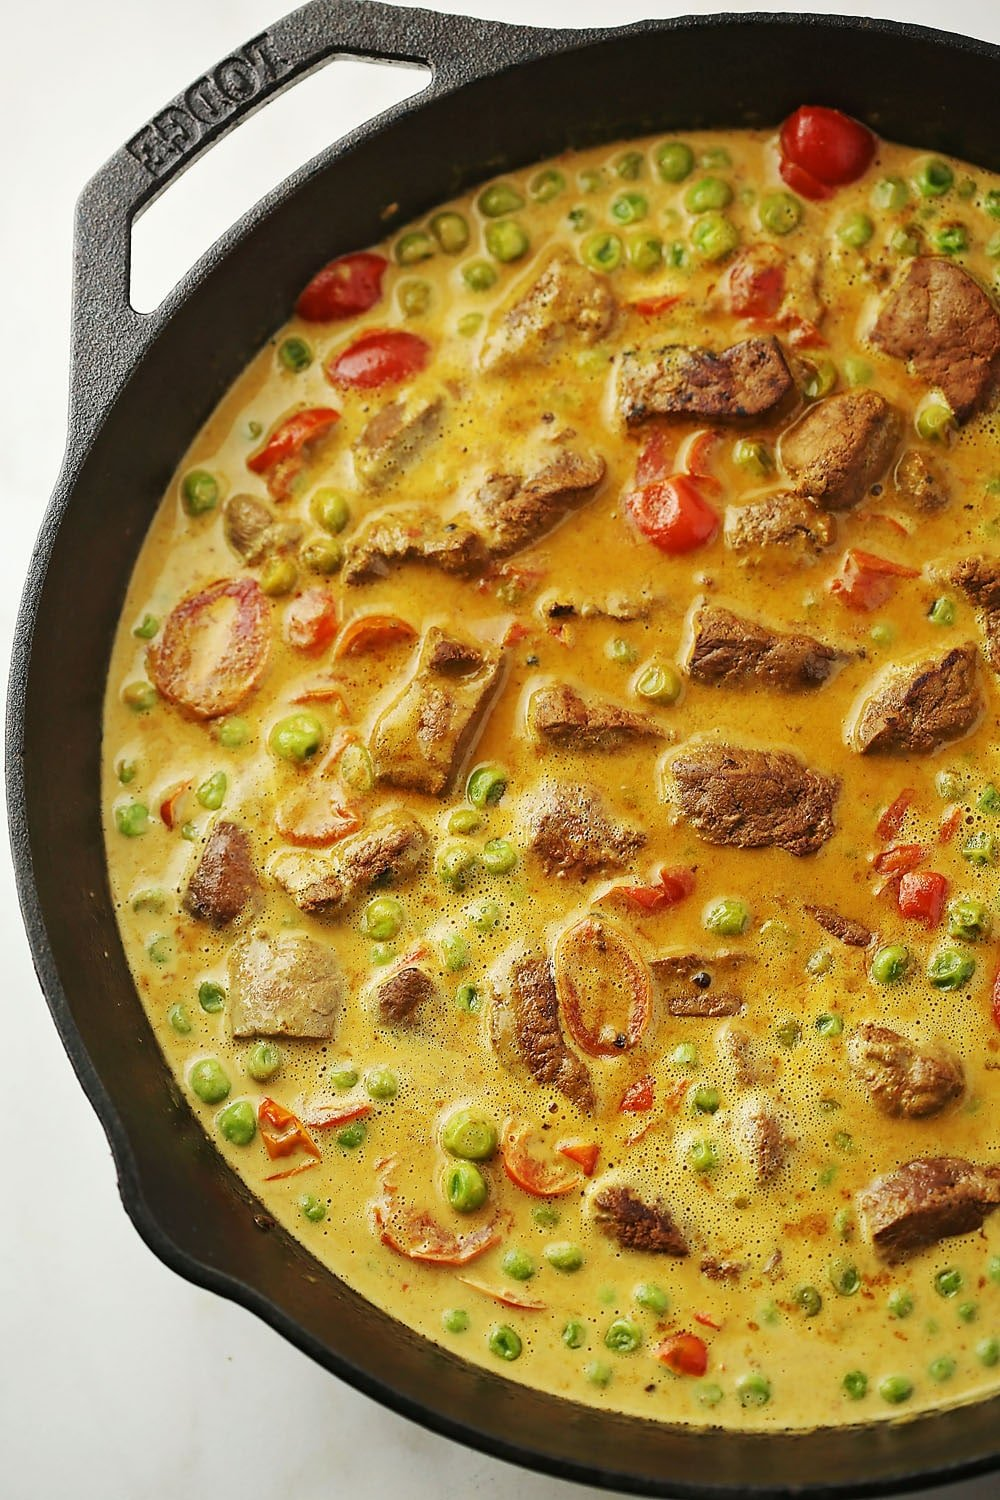 skillet with liver, peas, and tomatoes in sauce